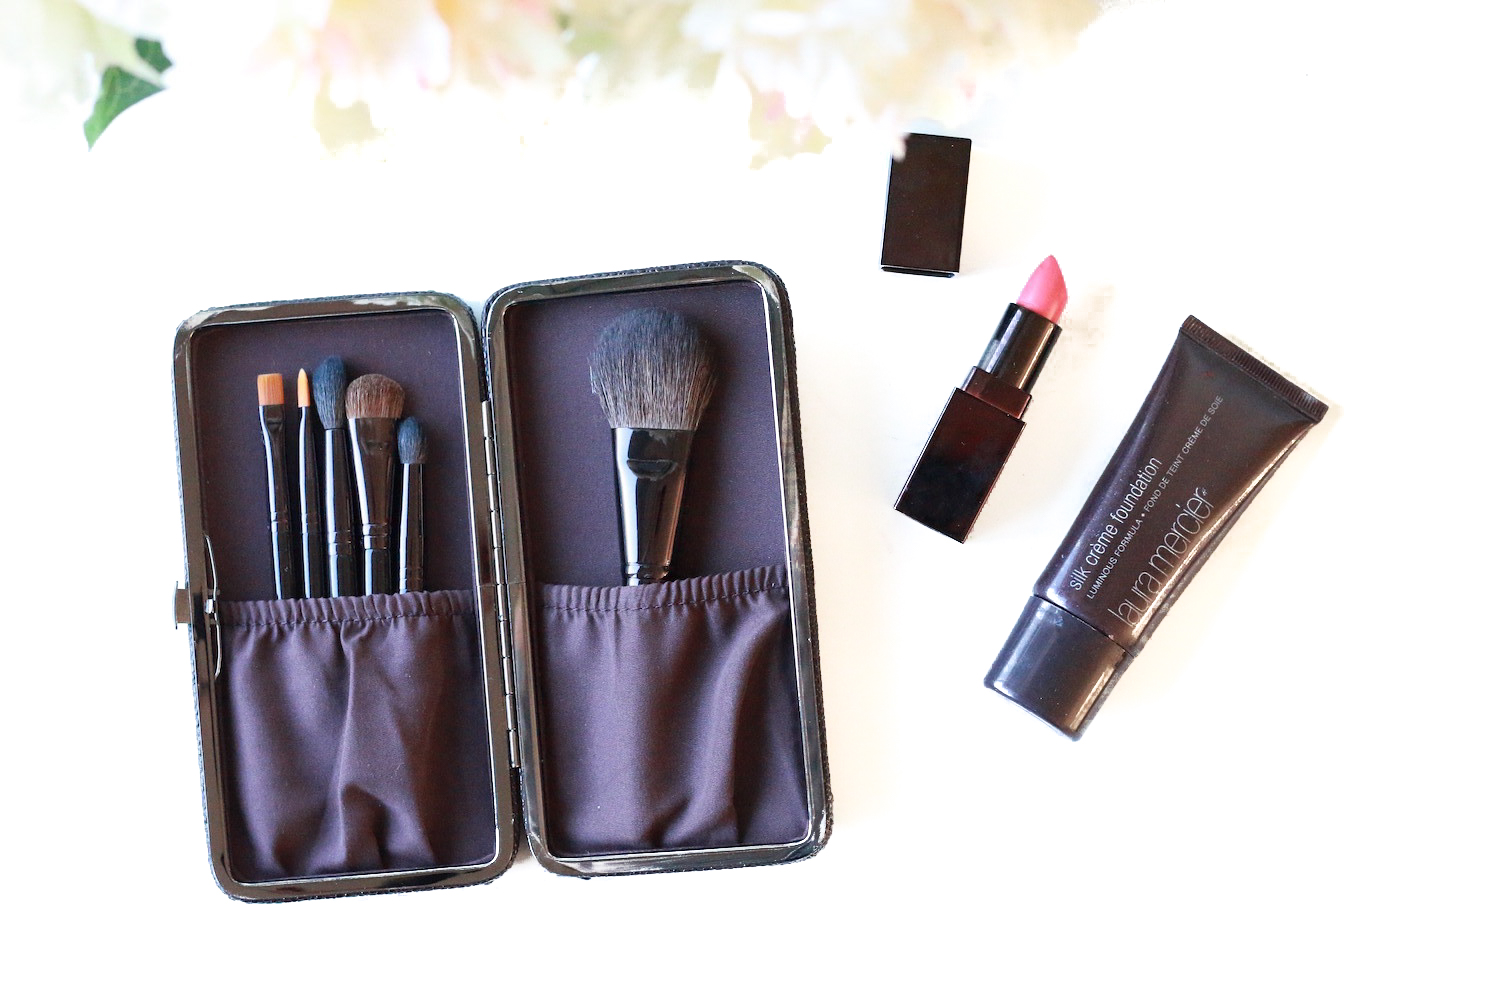 Laura-Mercier-Stroke-of-Genius-Luxe-Brush-Collection-Review-Set-weihnachten-2015